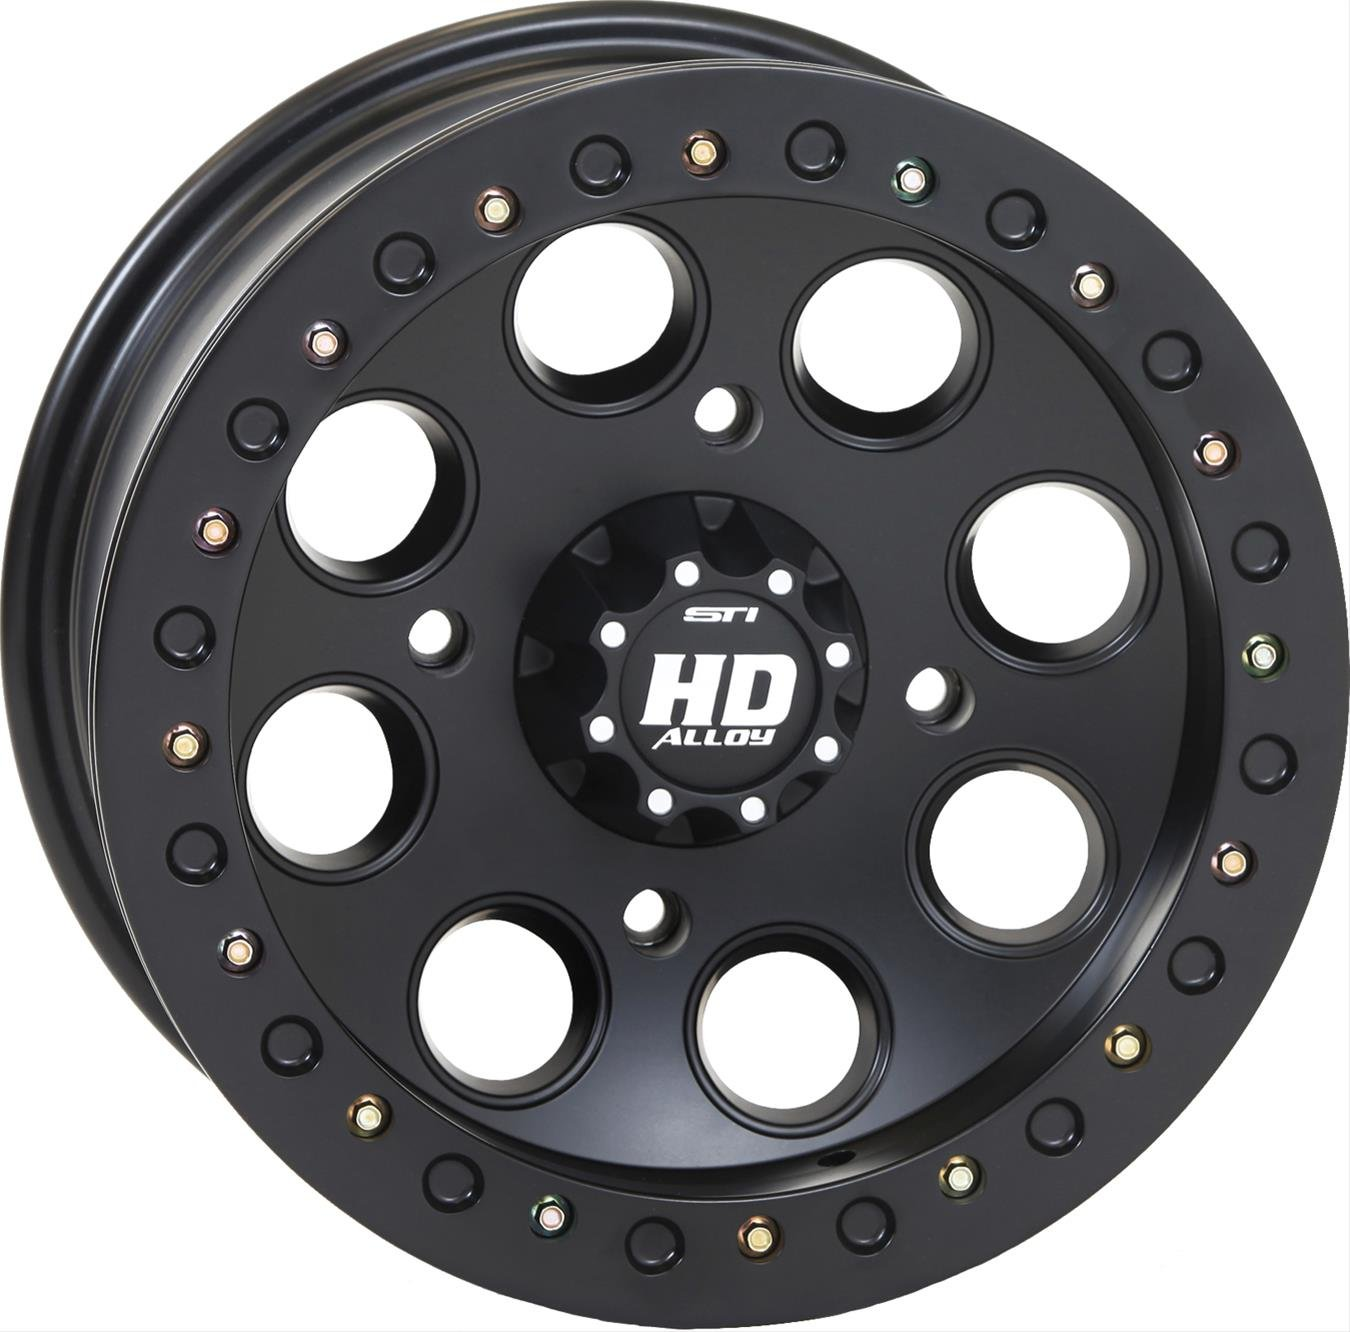 STI HD Beadlock Matte Black ATV Wheel 12x7 4/137 - (5+2) [12HB127]